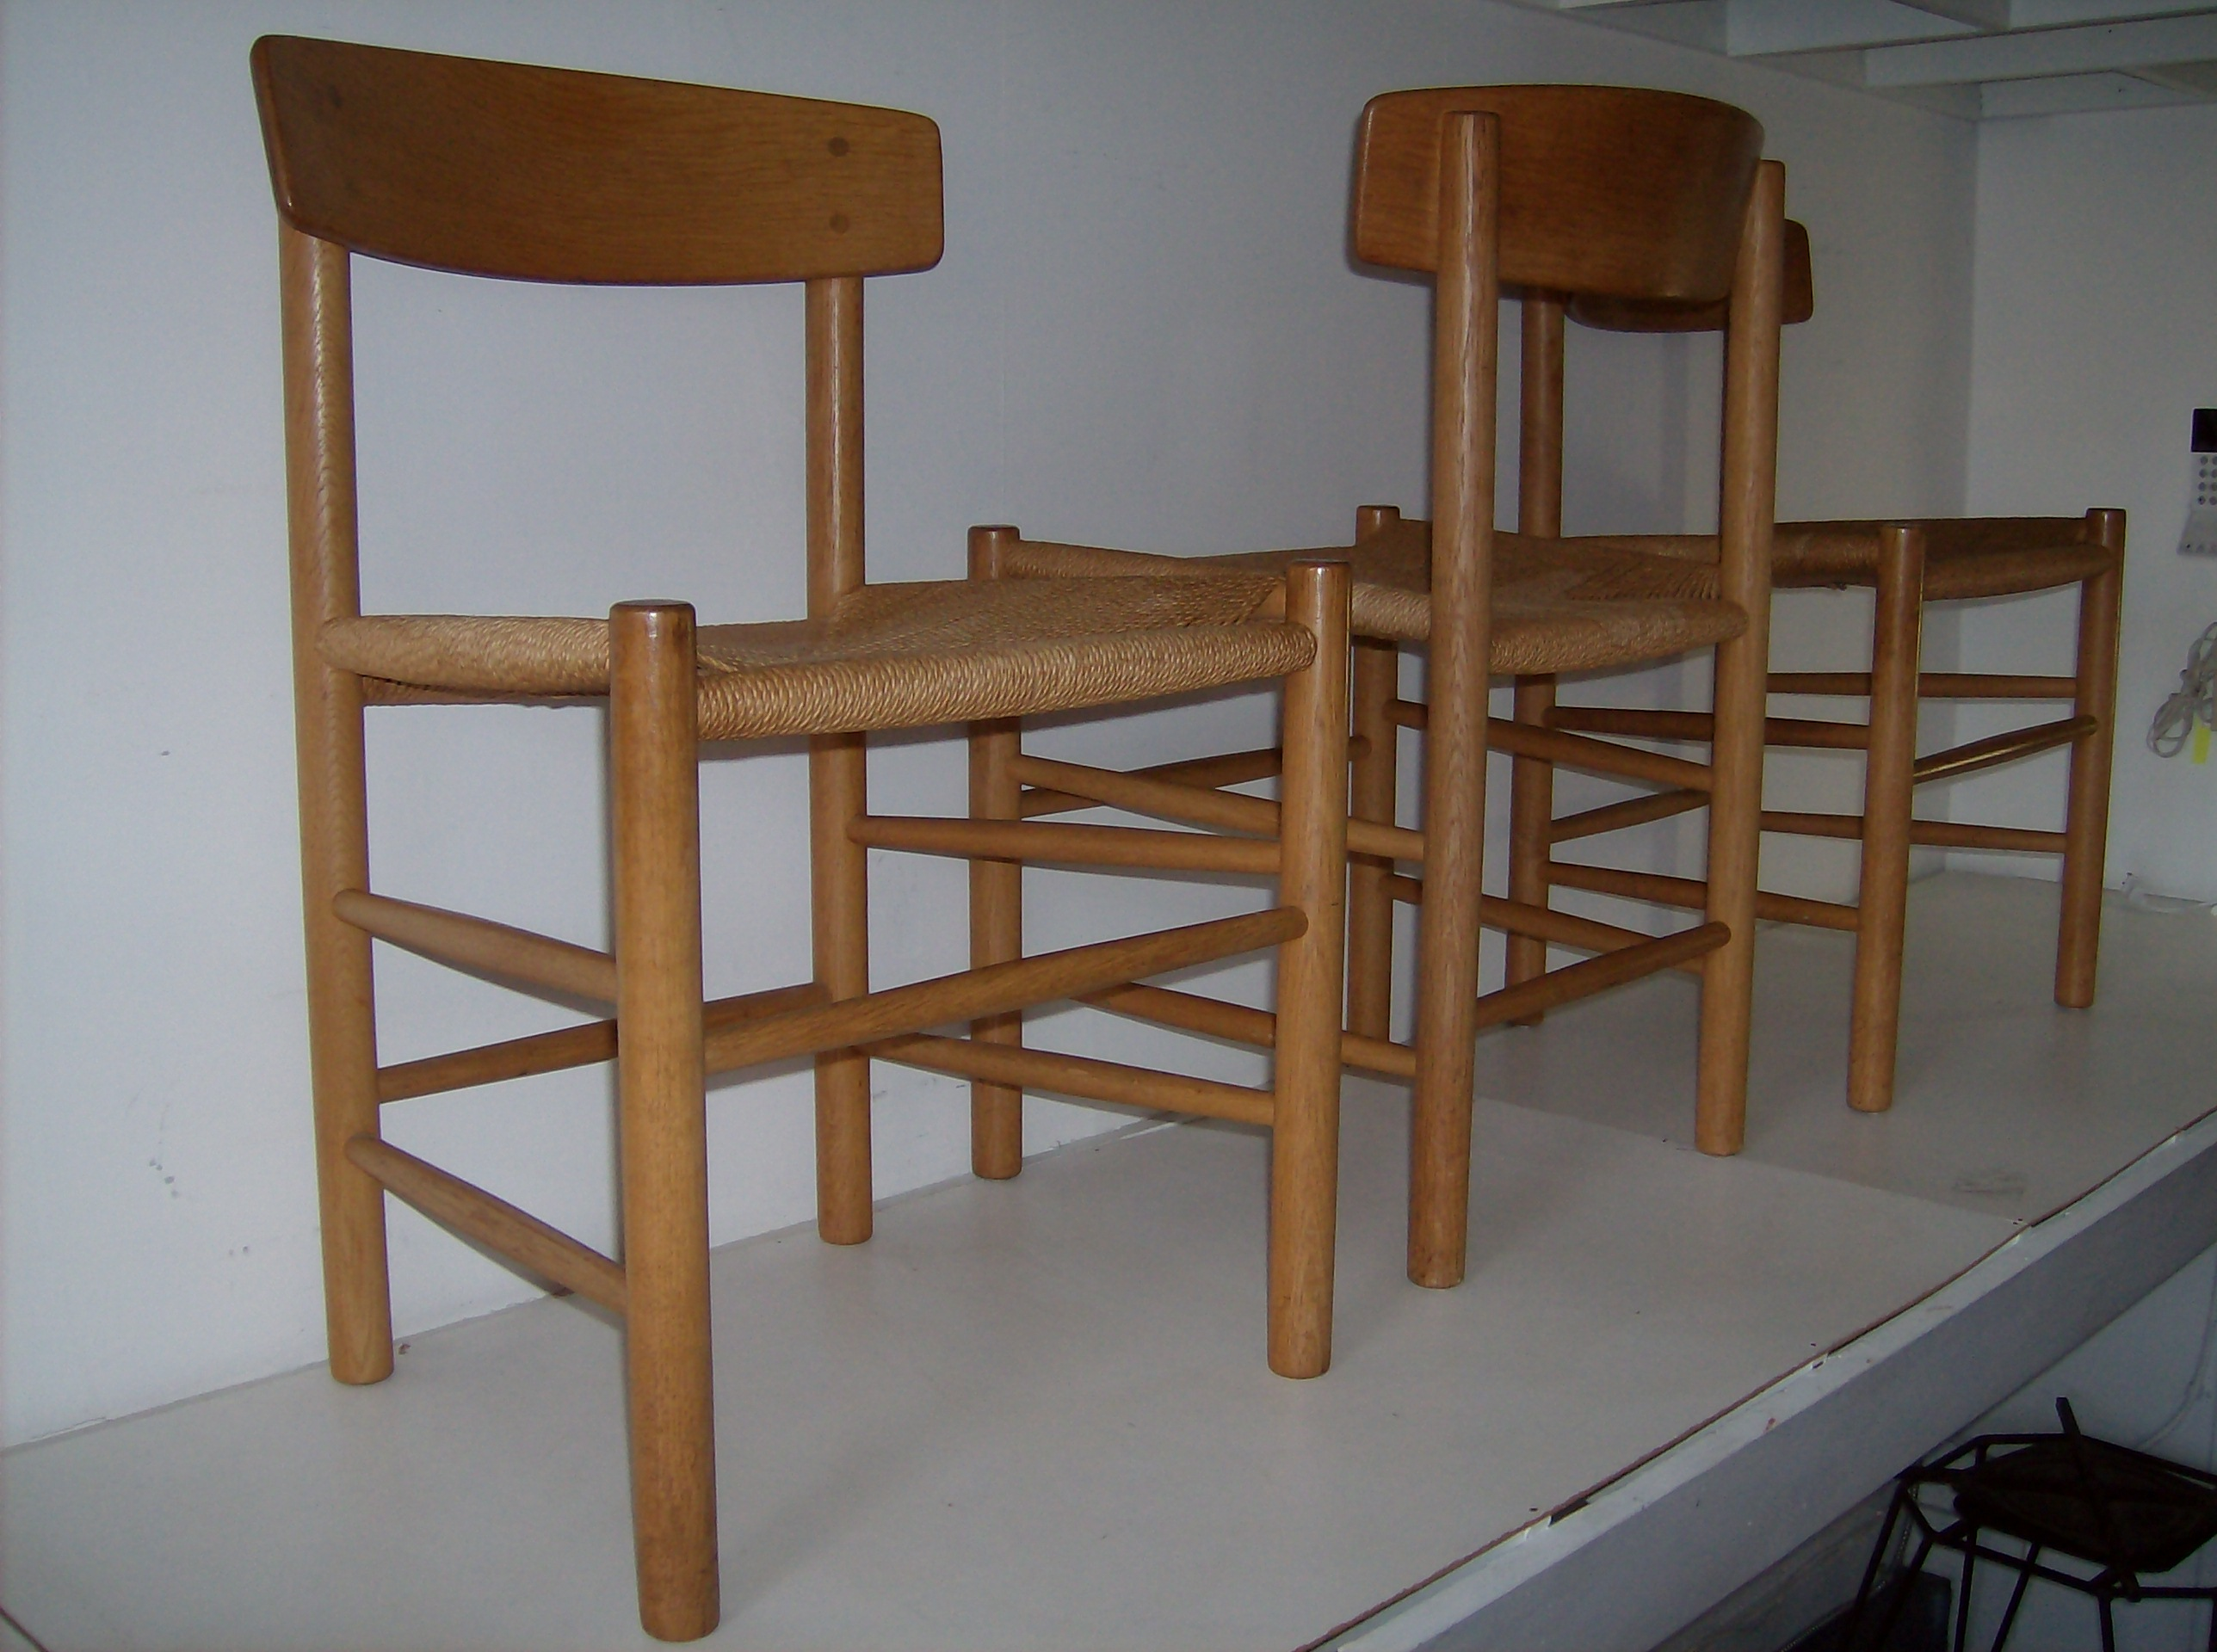 Modern shaker furniture - Gorgeous Set Of 3 Classic Danish Dining Chairs Known As The Shaker Chairs Model